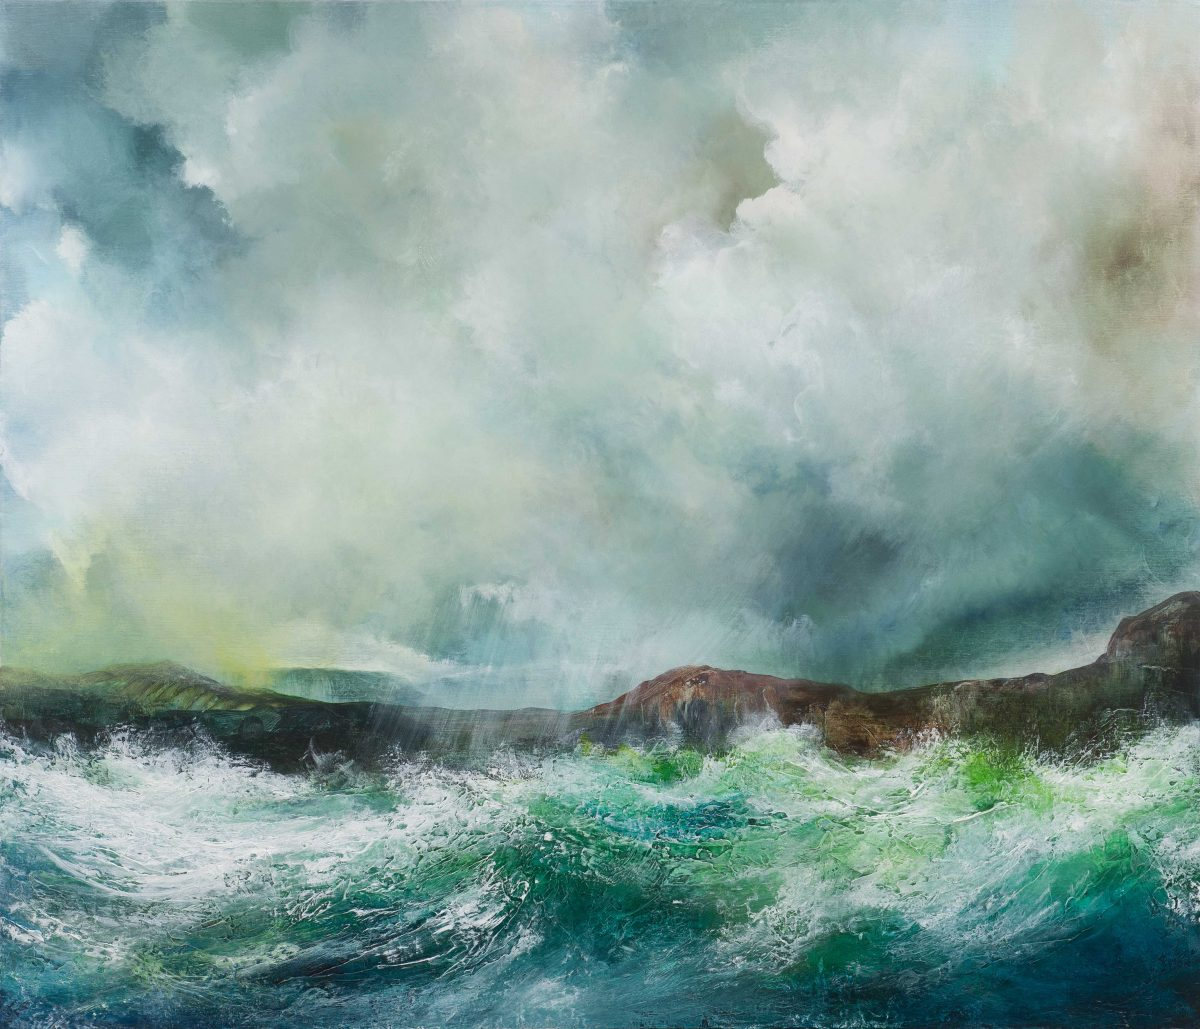 troubled-waters-120cm-x-140cm